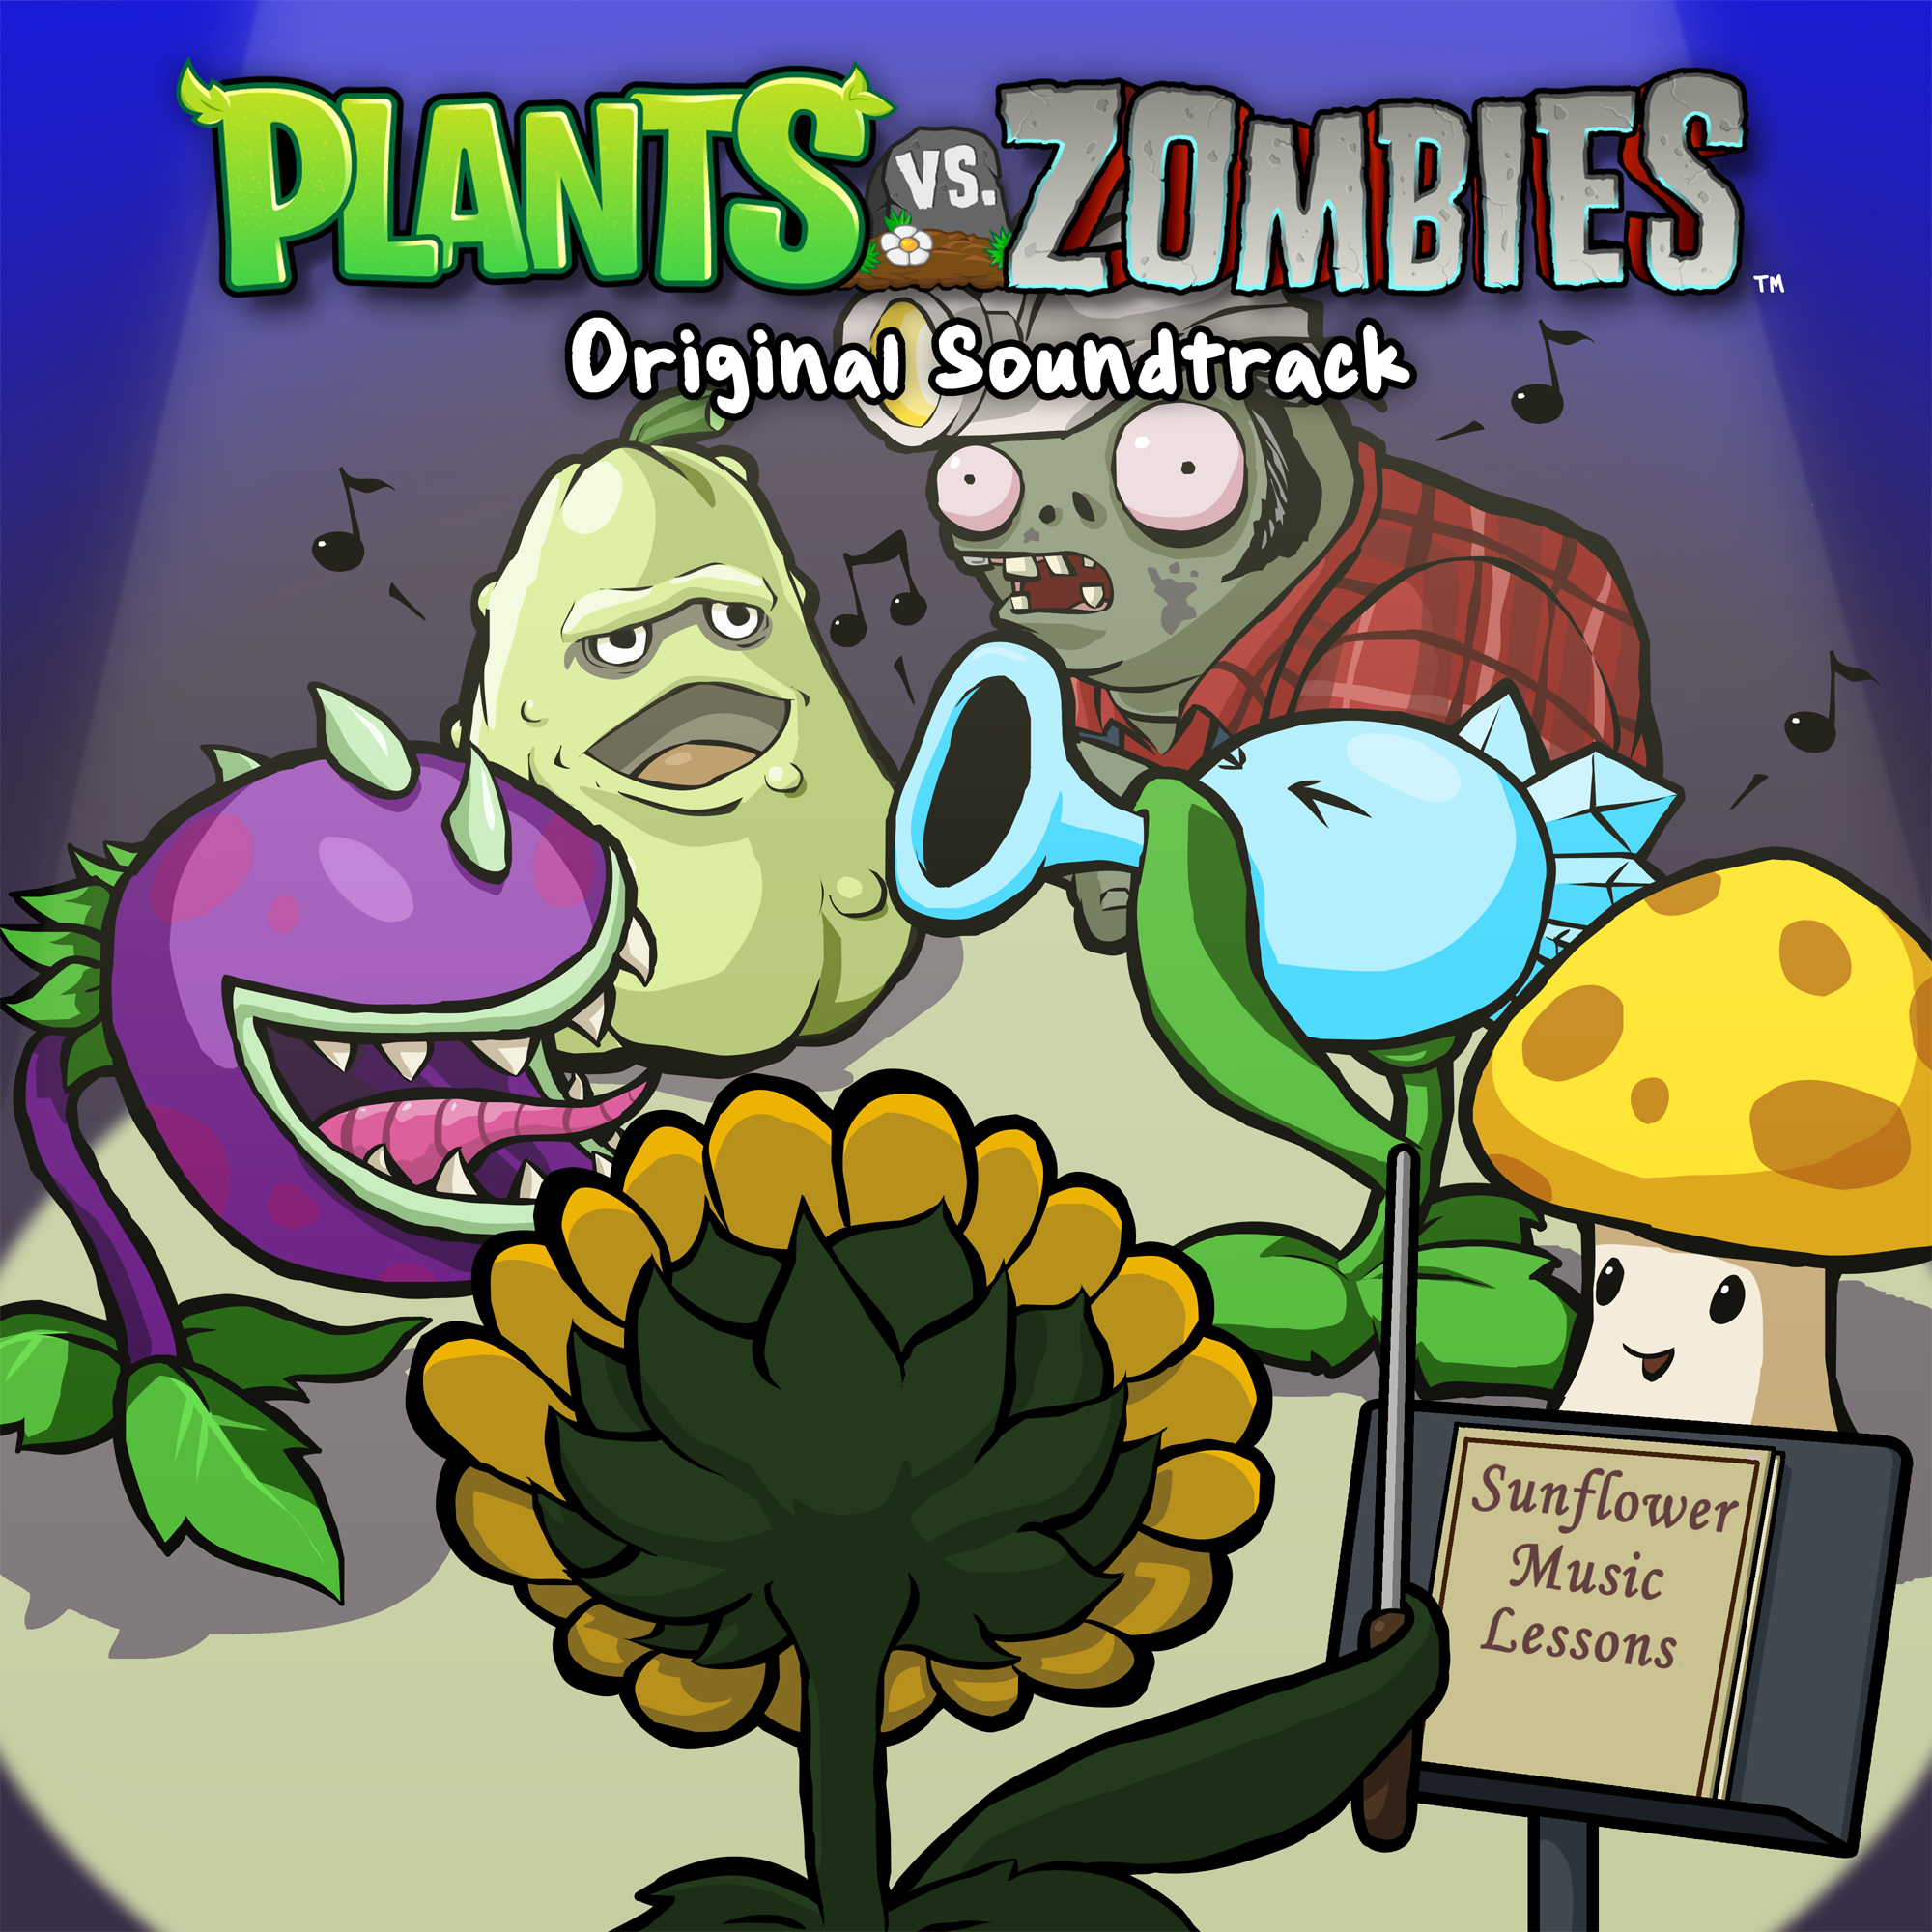 Plants vs zombies original soundtrack